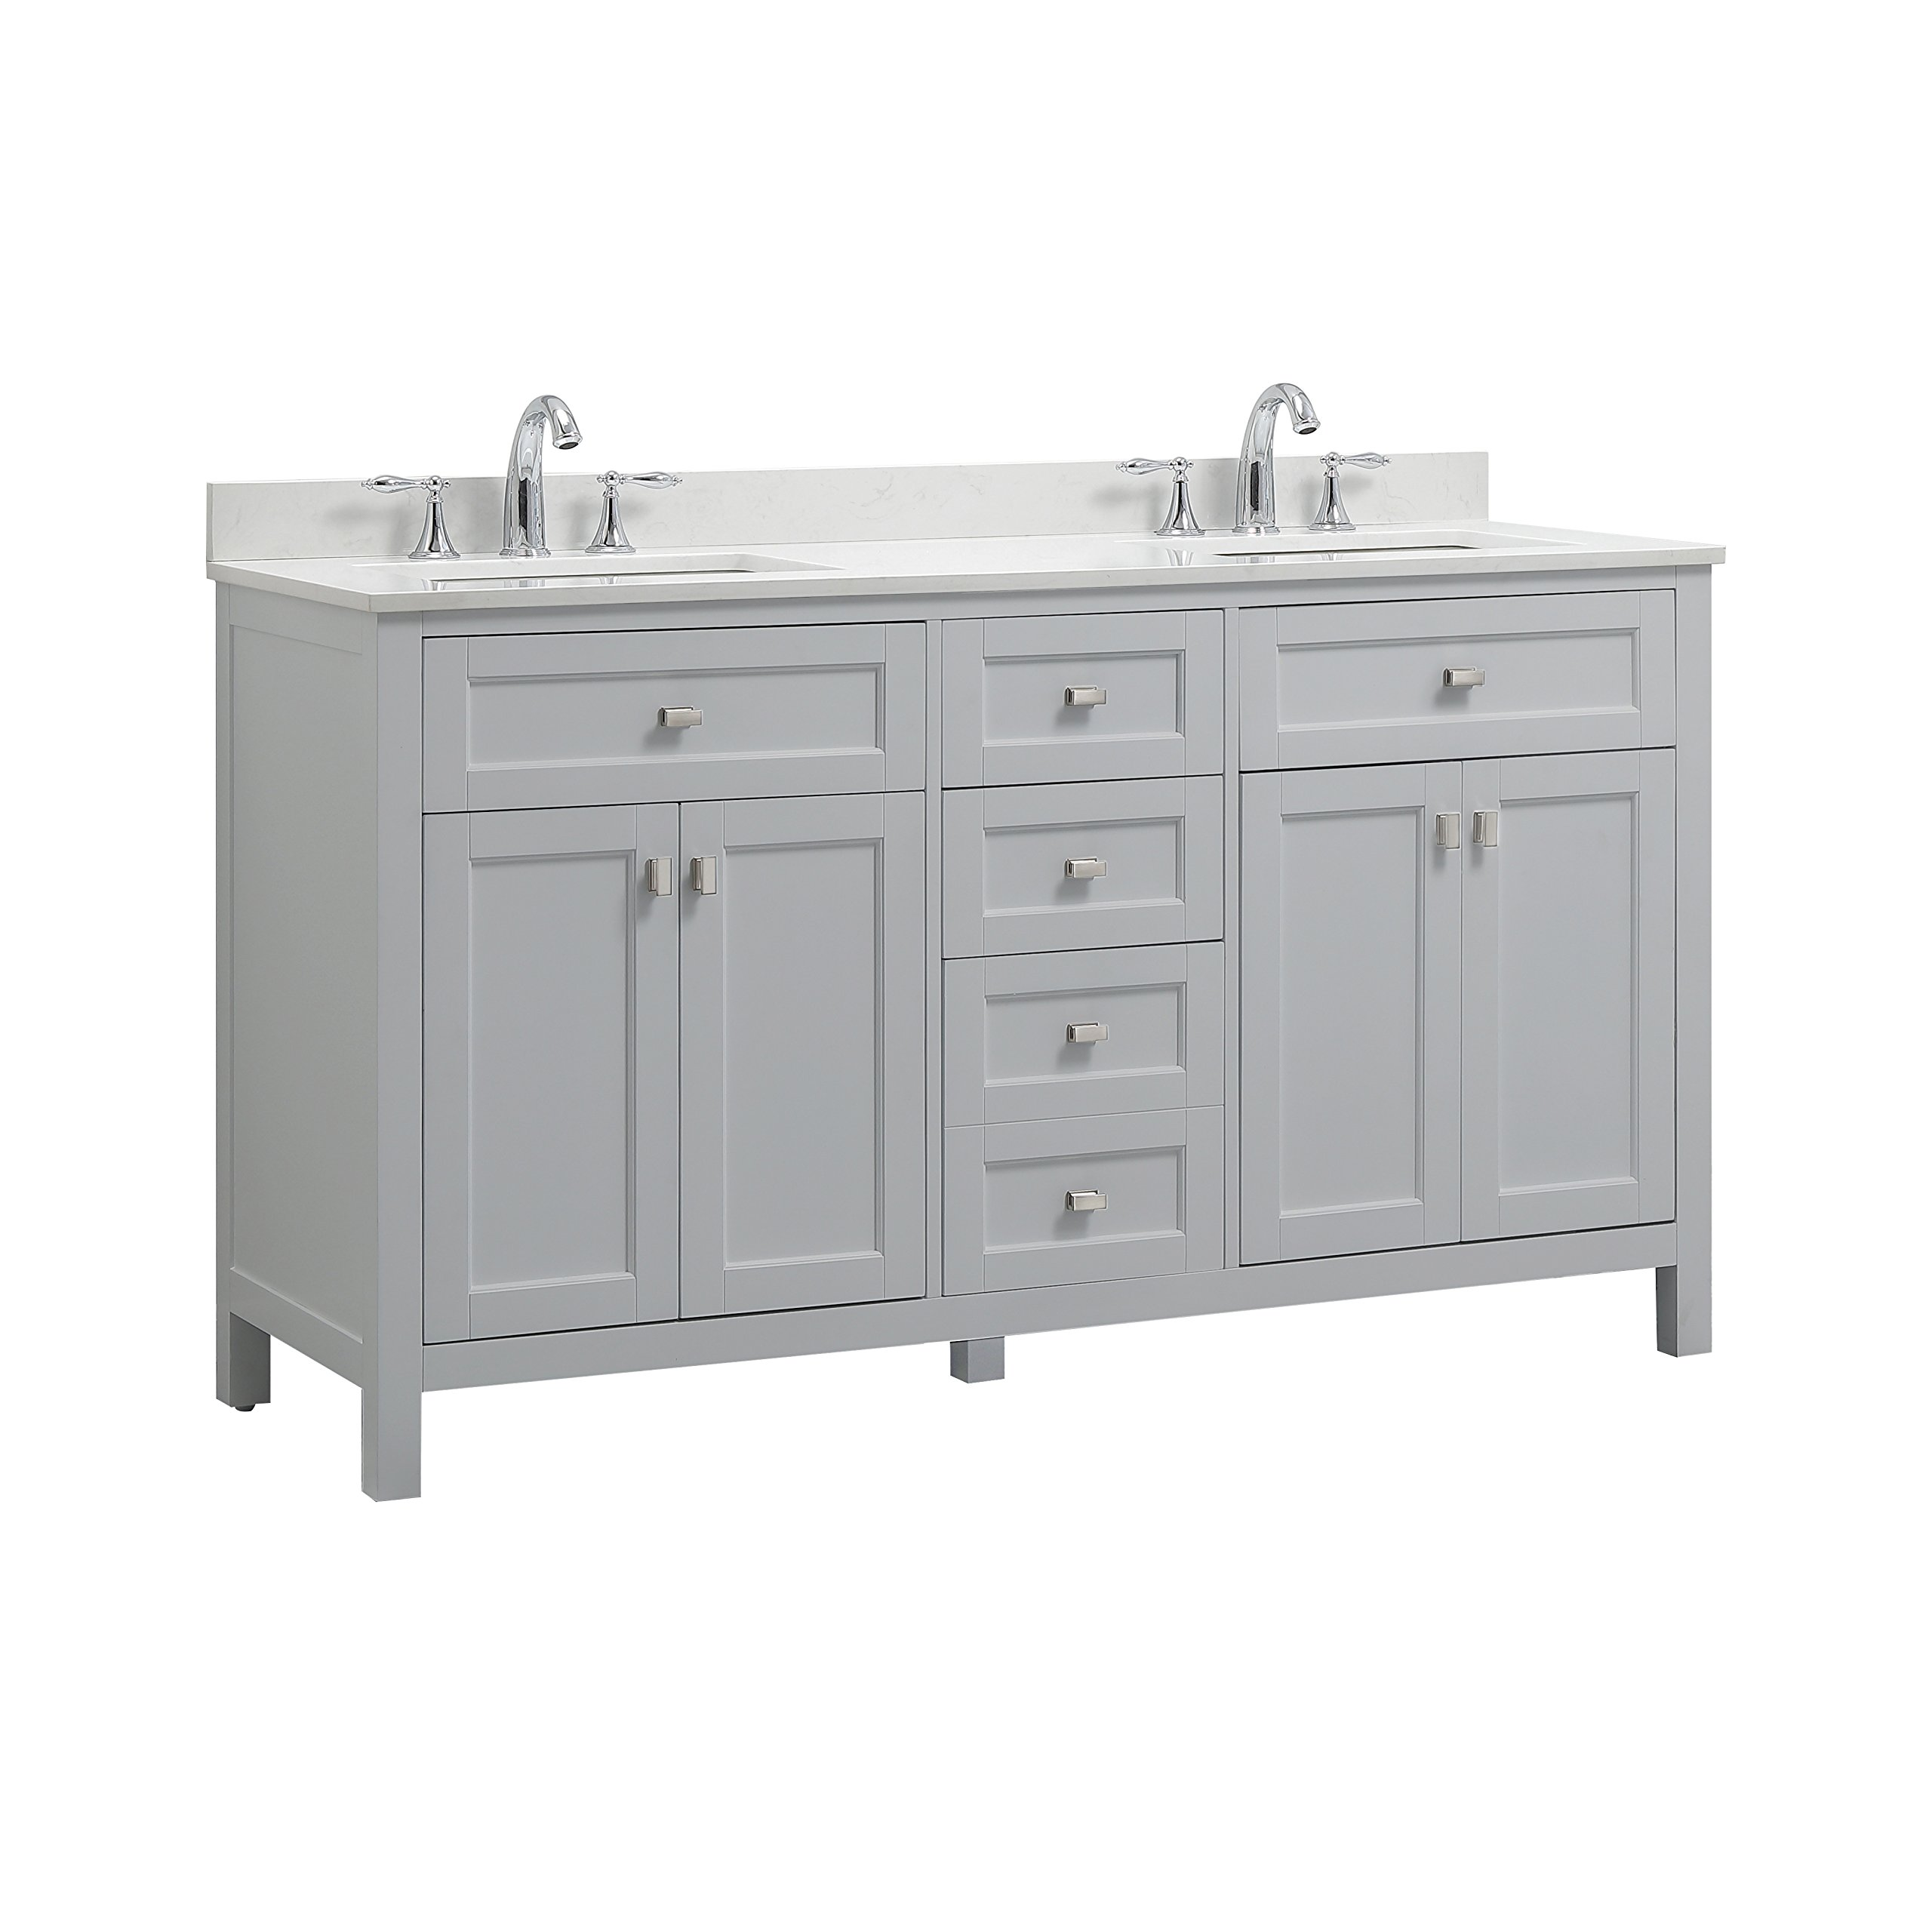 CAHABA CA101015 Juniper Collection Vanity with Top, Dove Grey Vanity/White Top/White Basin